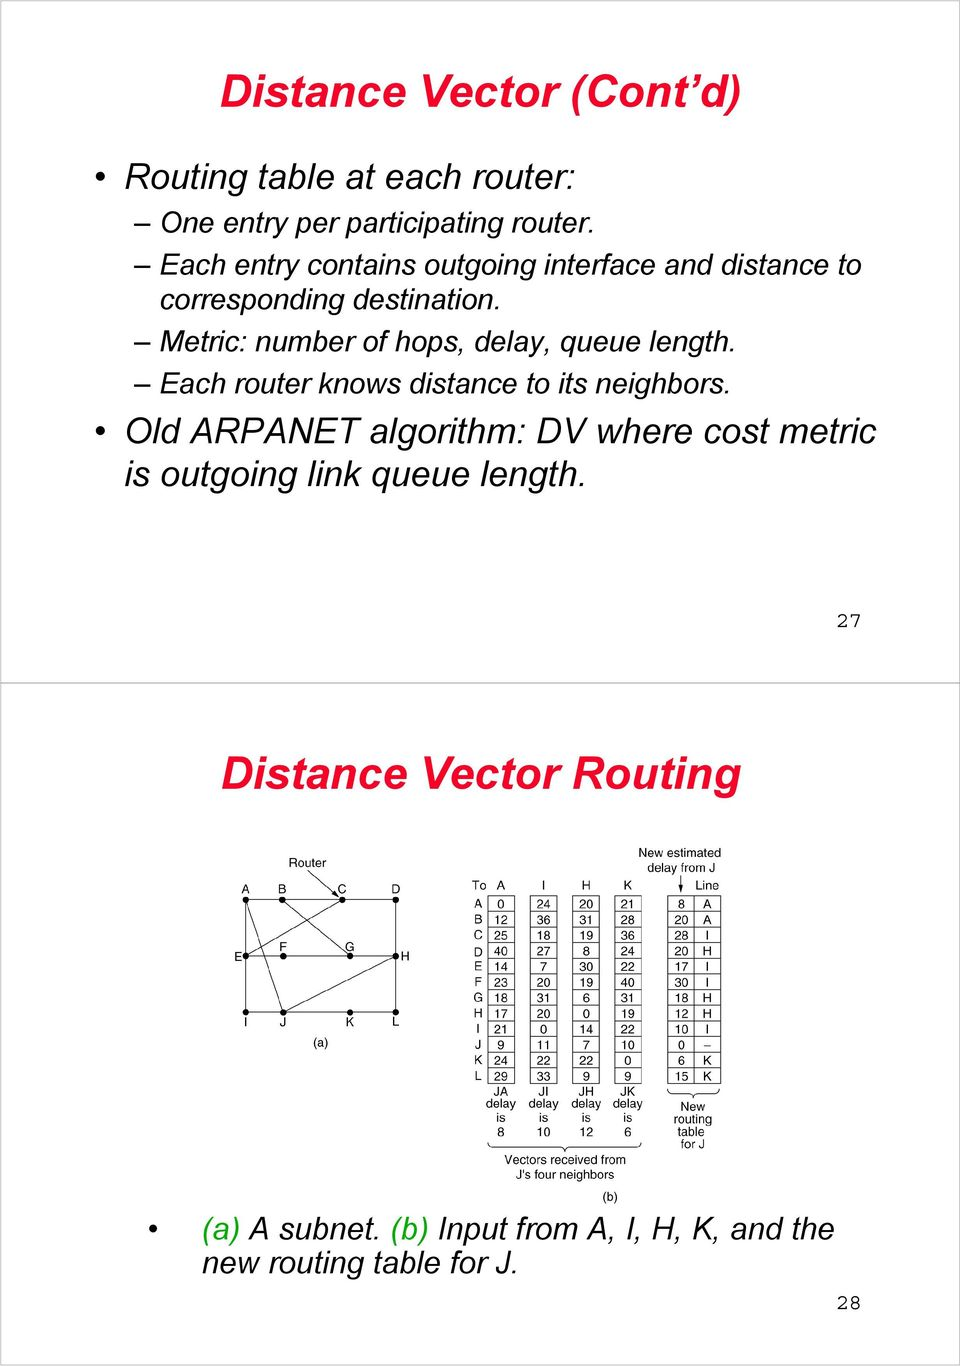 Metric: number of hops, delay, queue length. Each router knows distance to its neighbors.